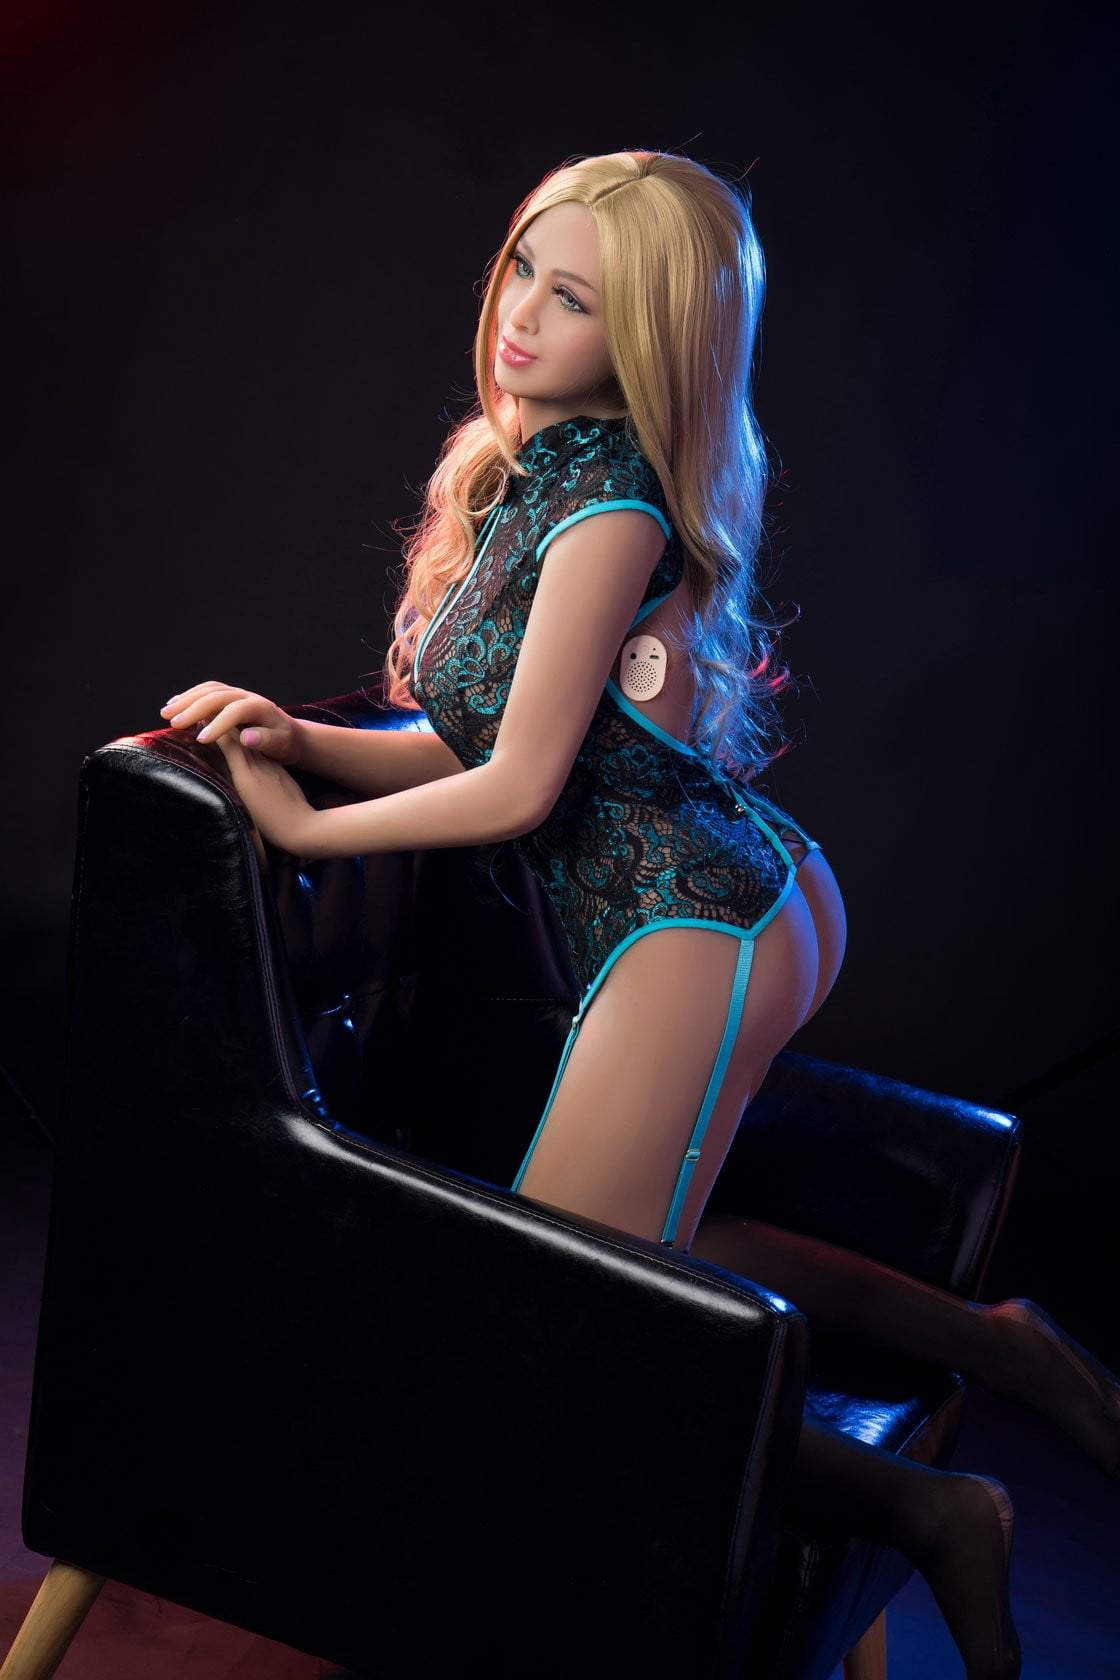 kelly sex doll Robot Modèle Sexdoll Blonde